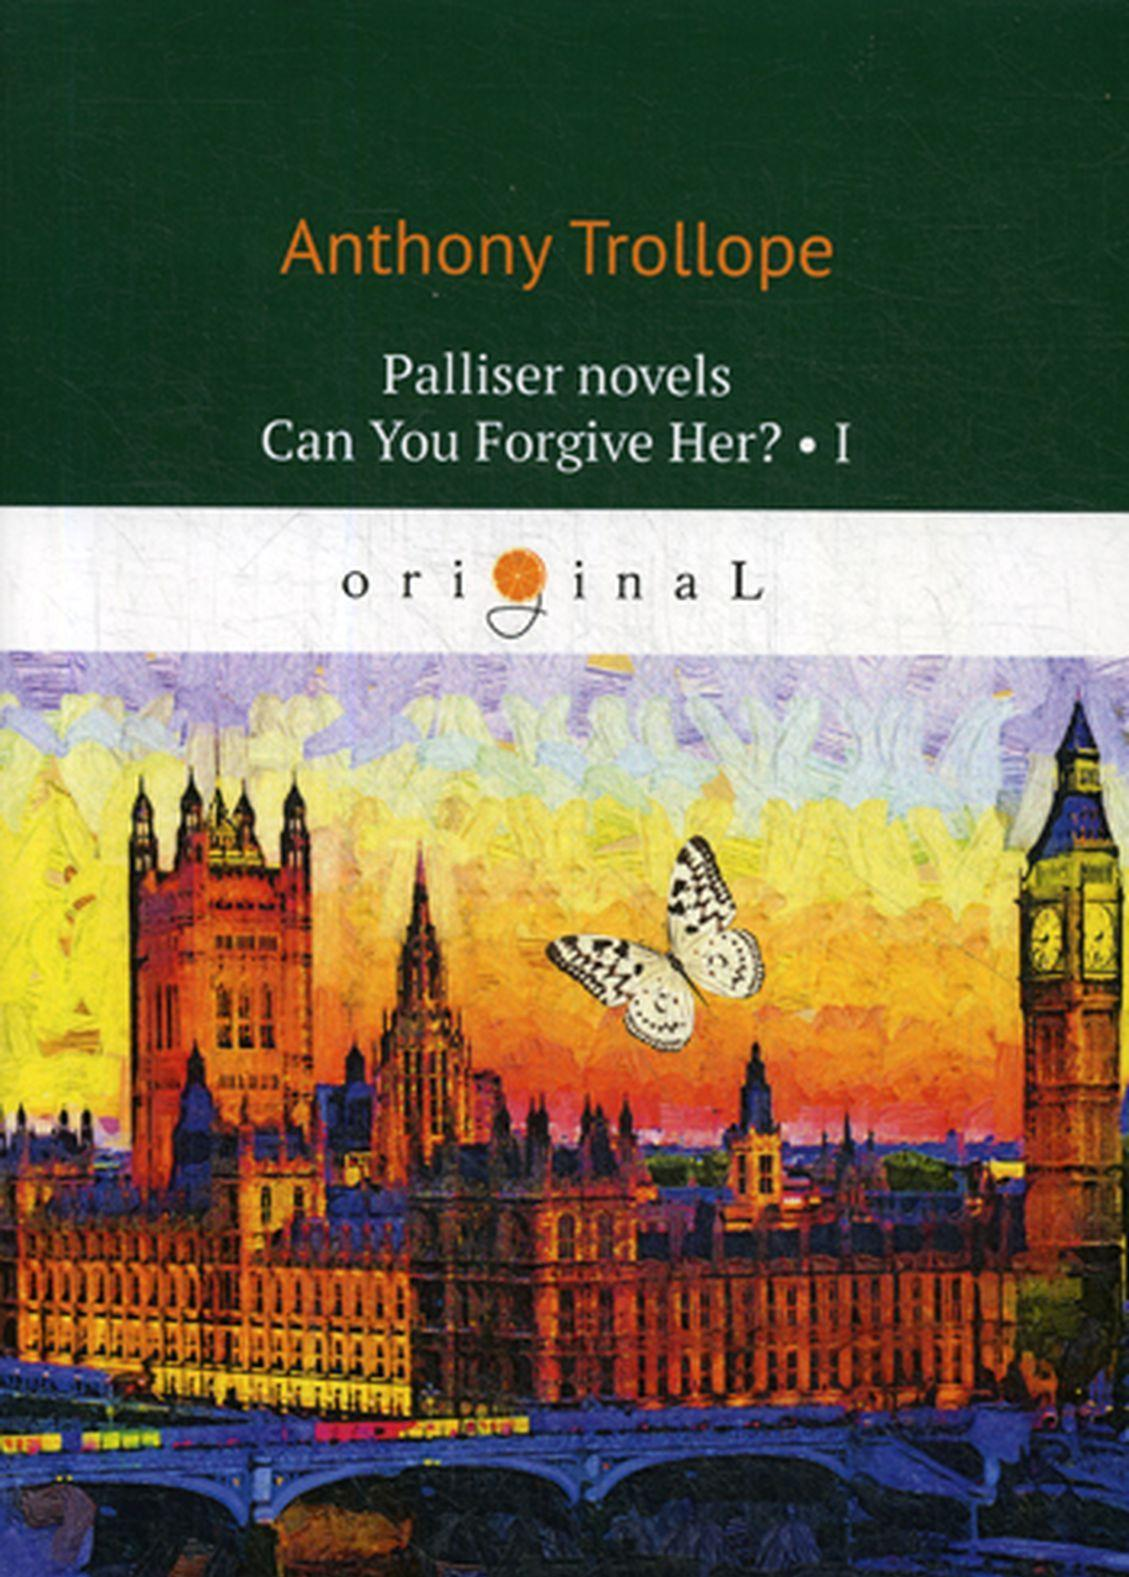 Palliser Novels: Can You Forgive Her? Part 1